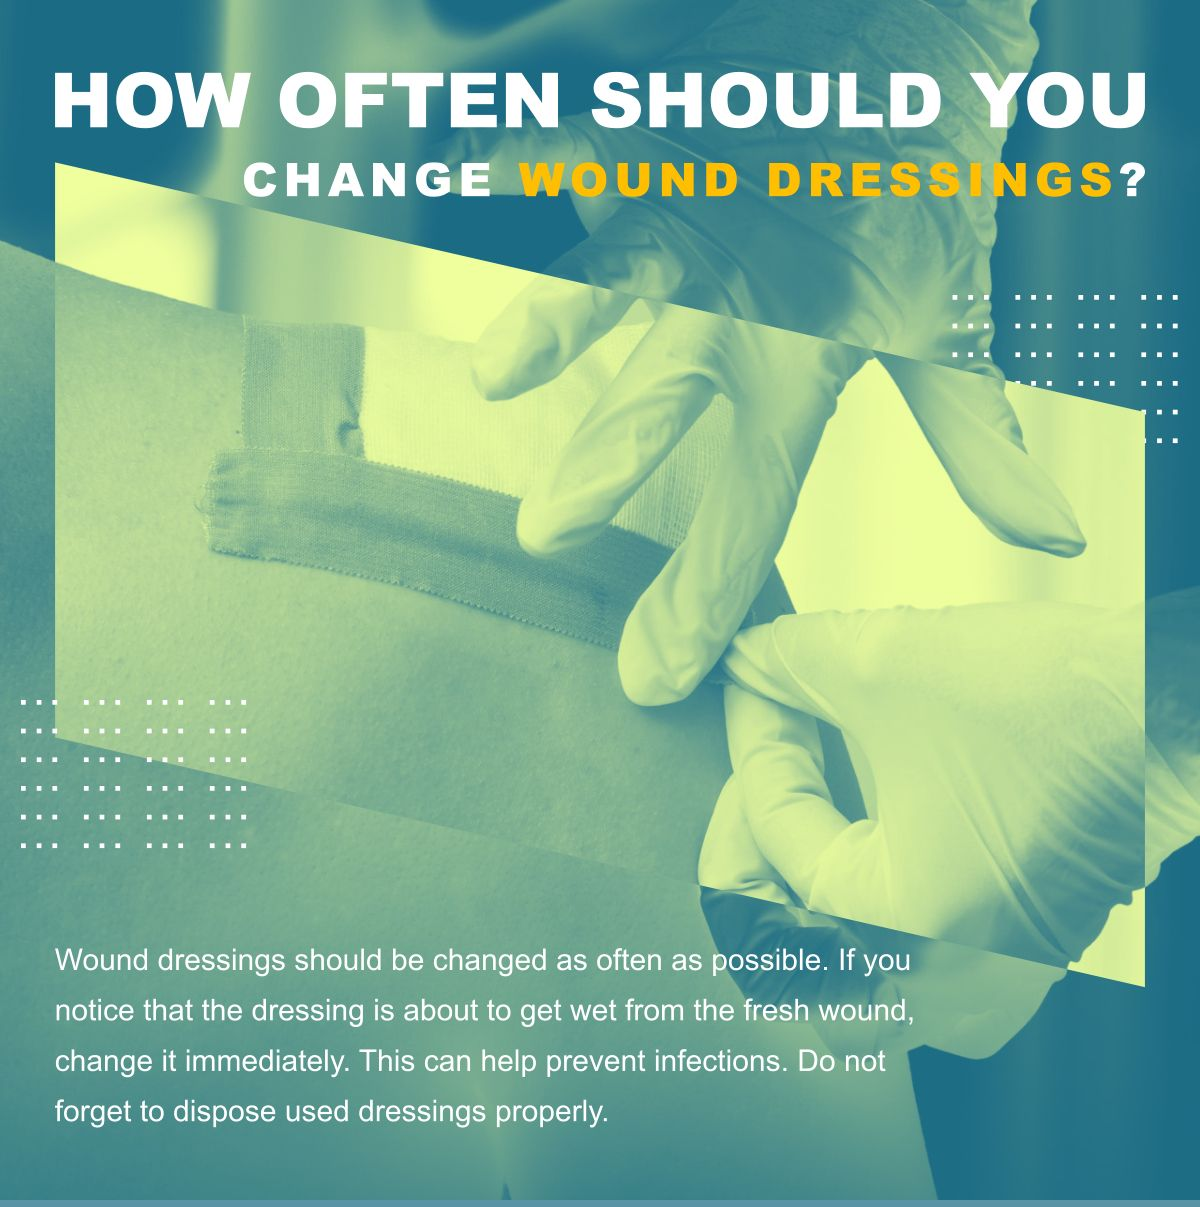 How Often Should You Change Wound Dressings? Visit www